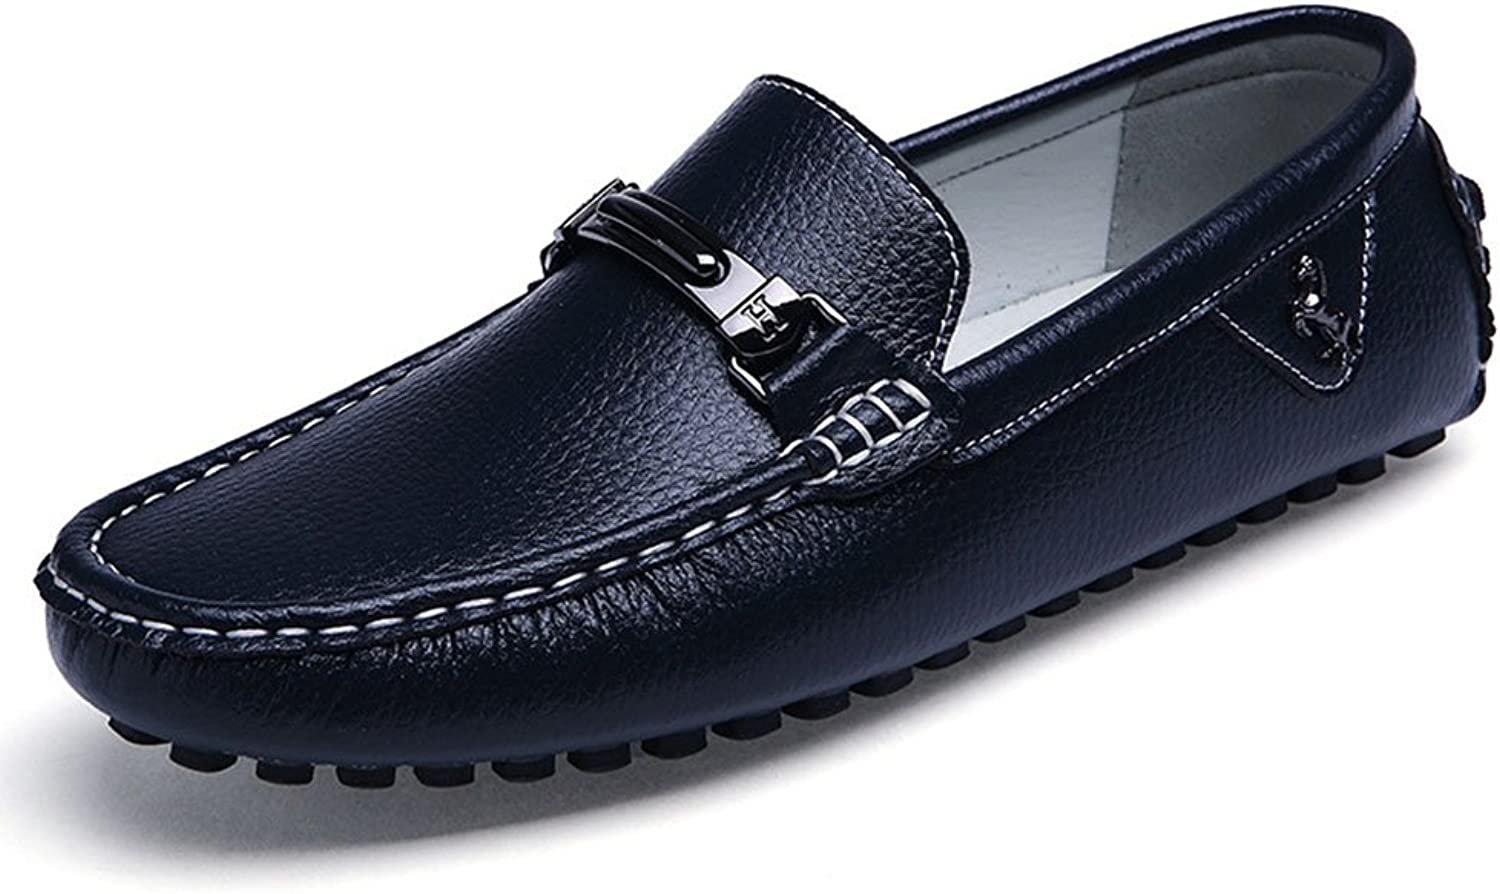 Leather Men's shoes Loafers Casual Driving shoes